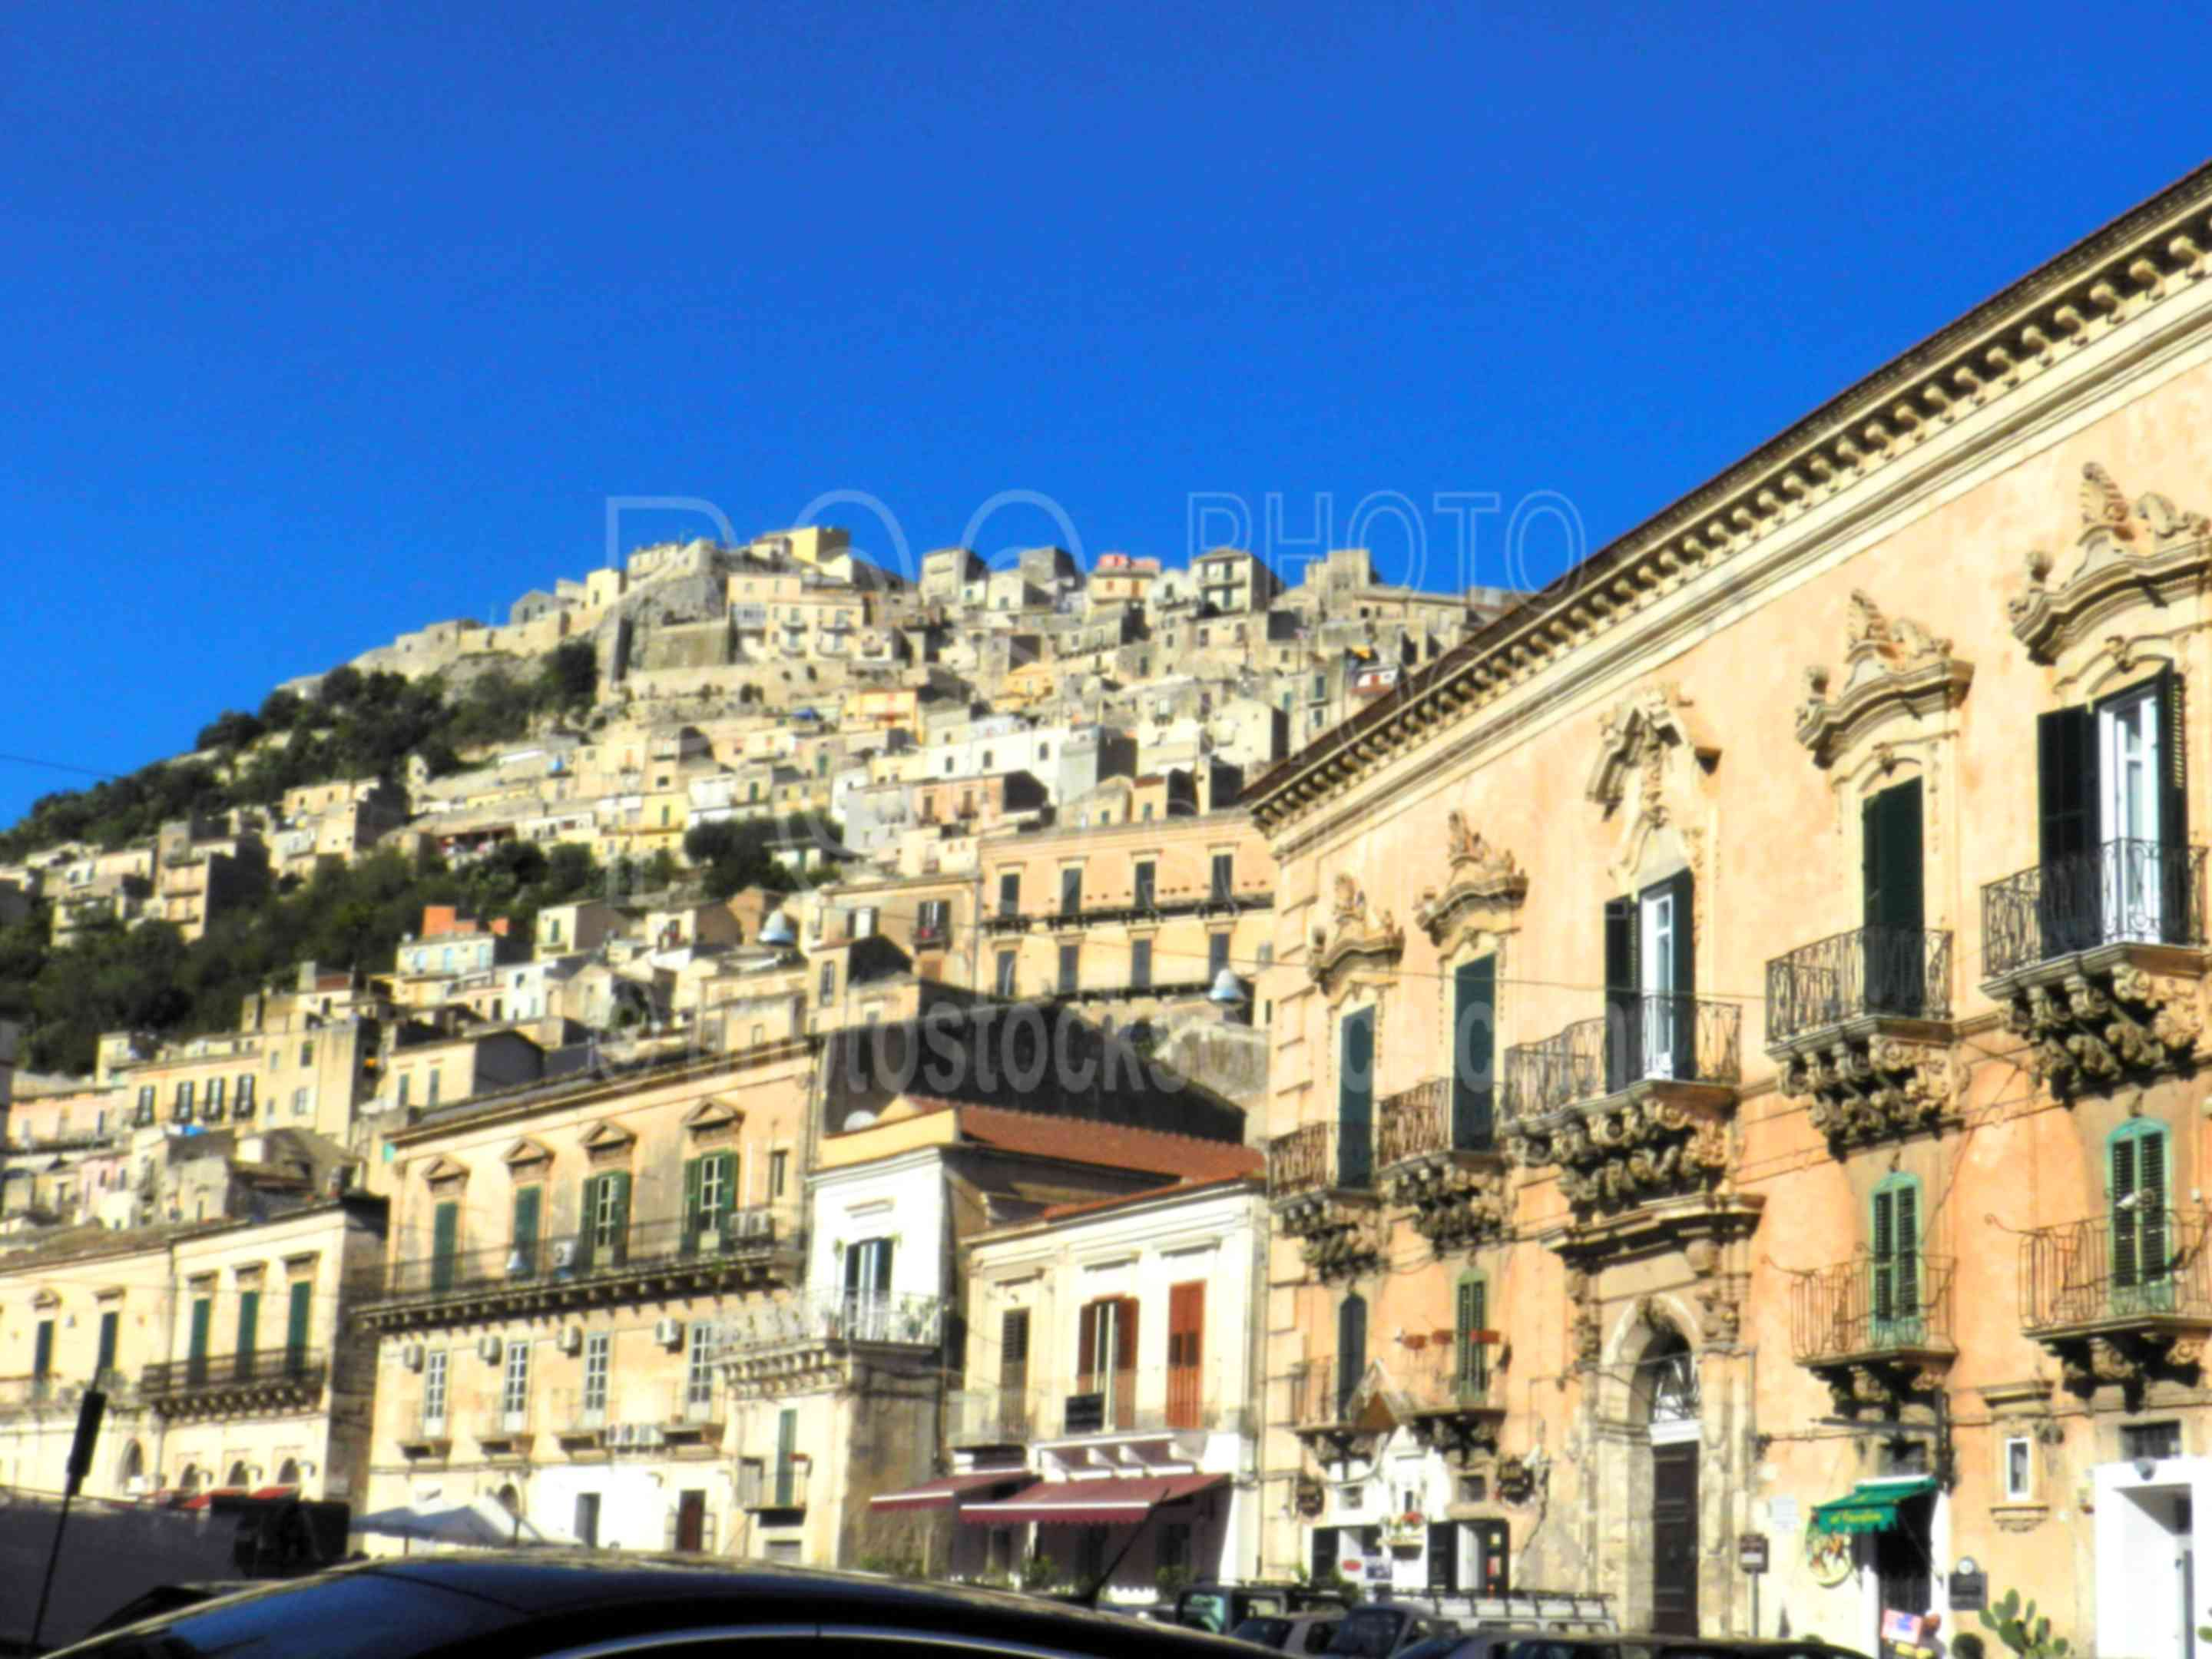 Upper Modica,modica,city